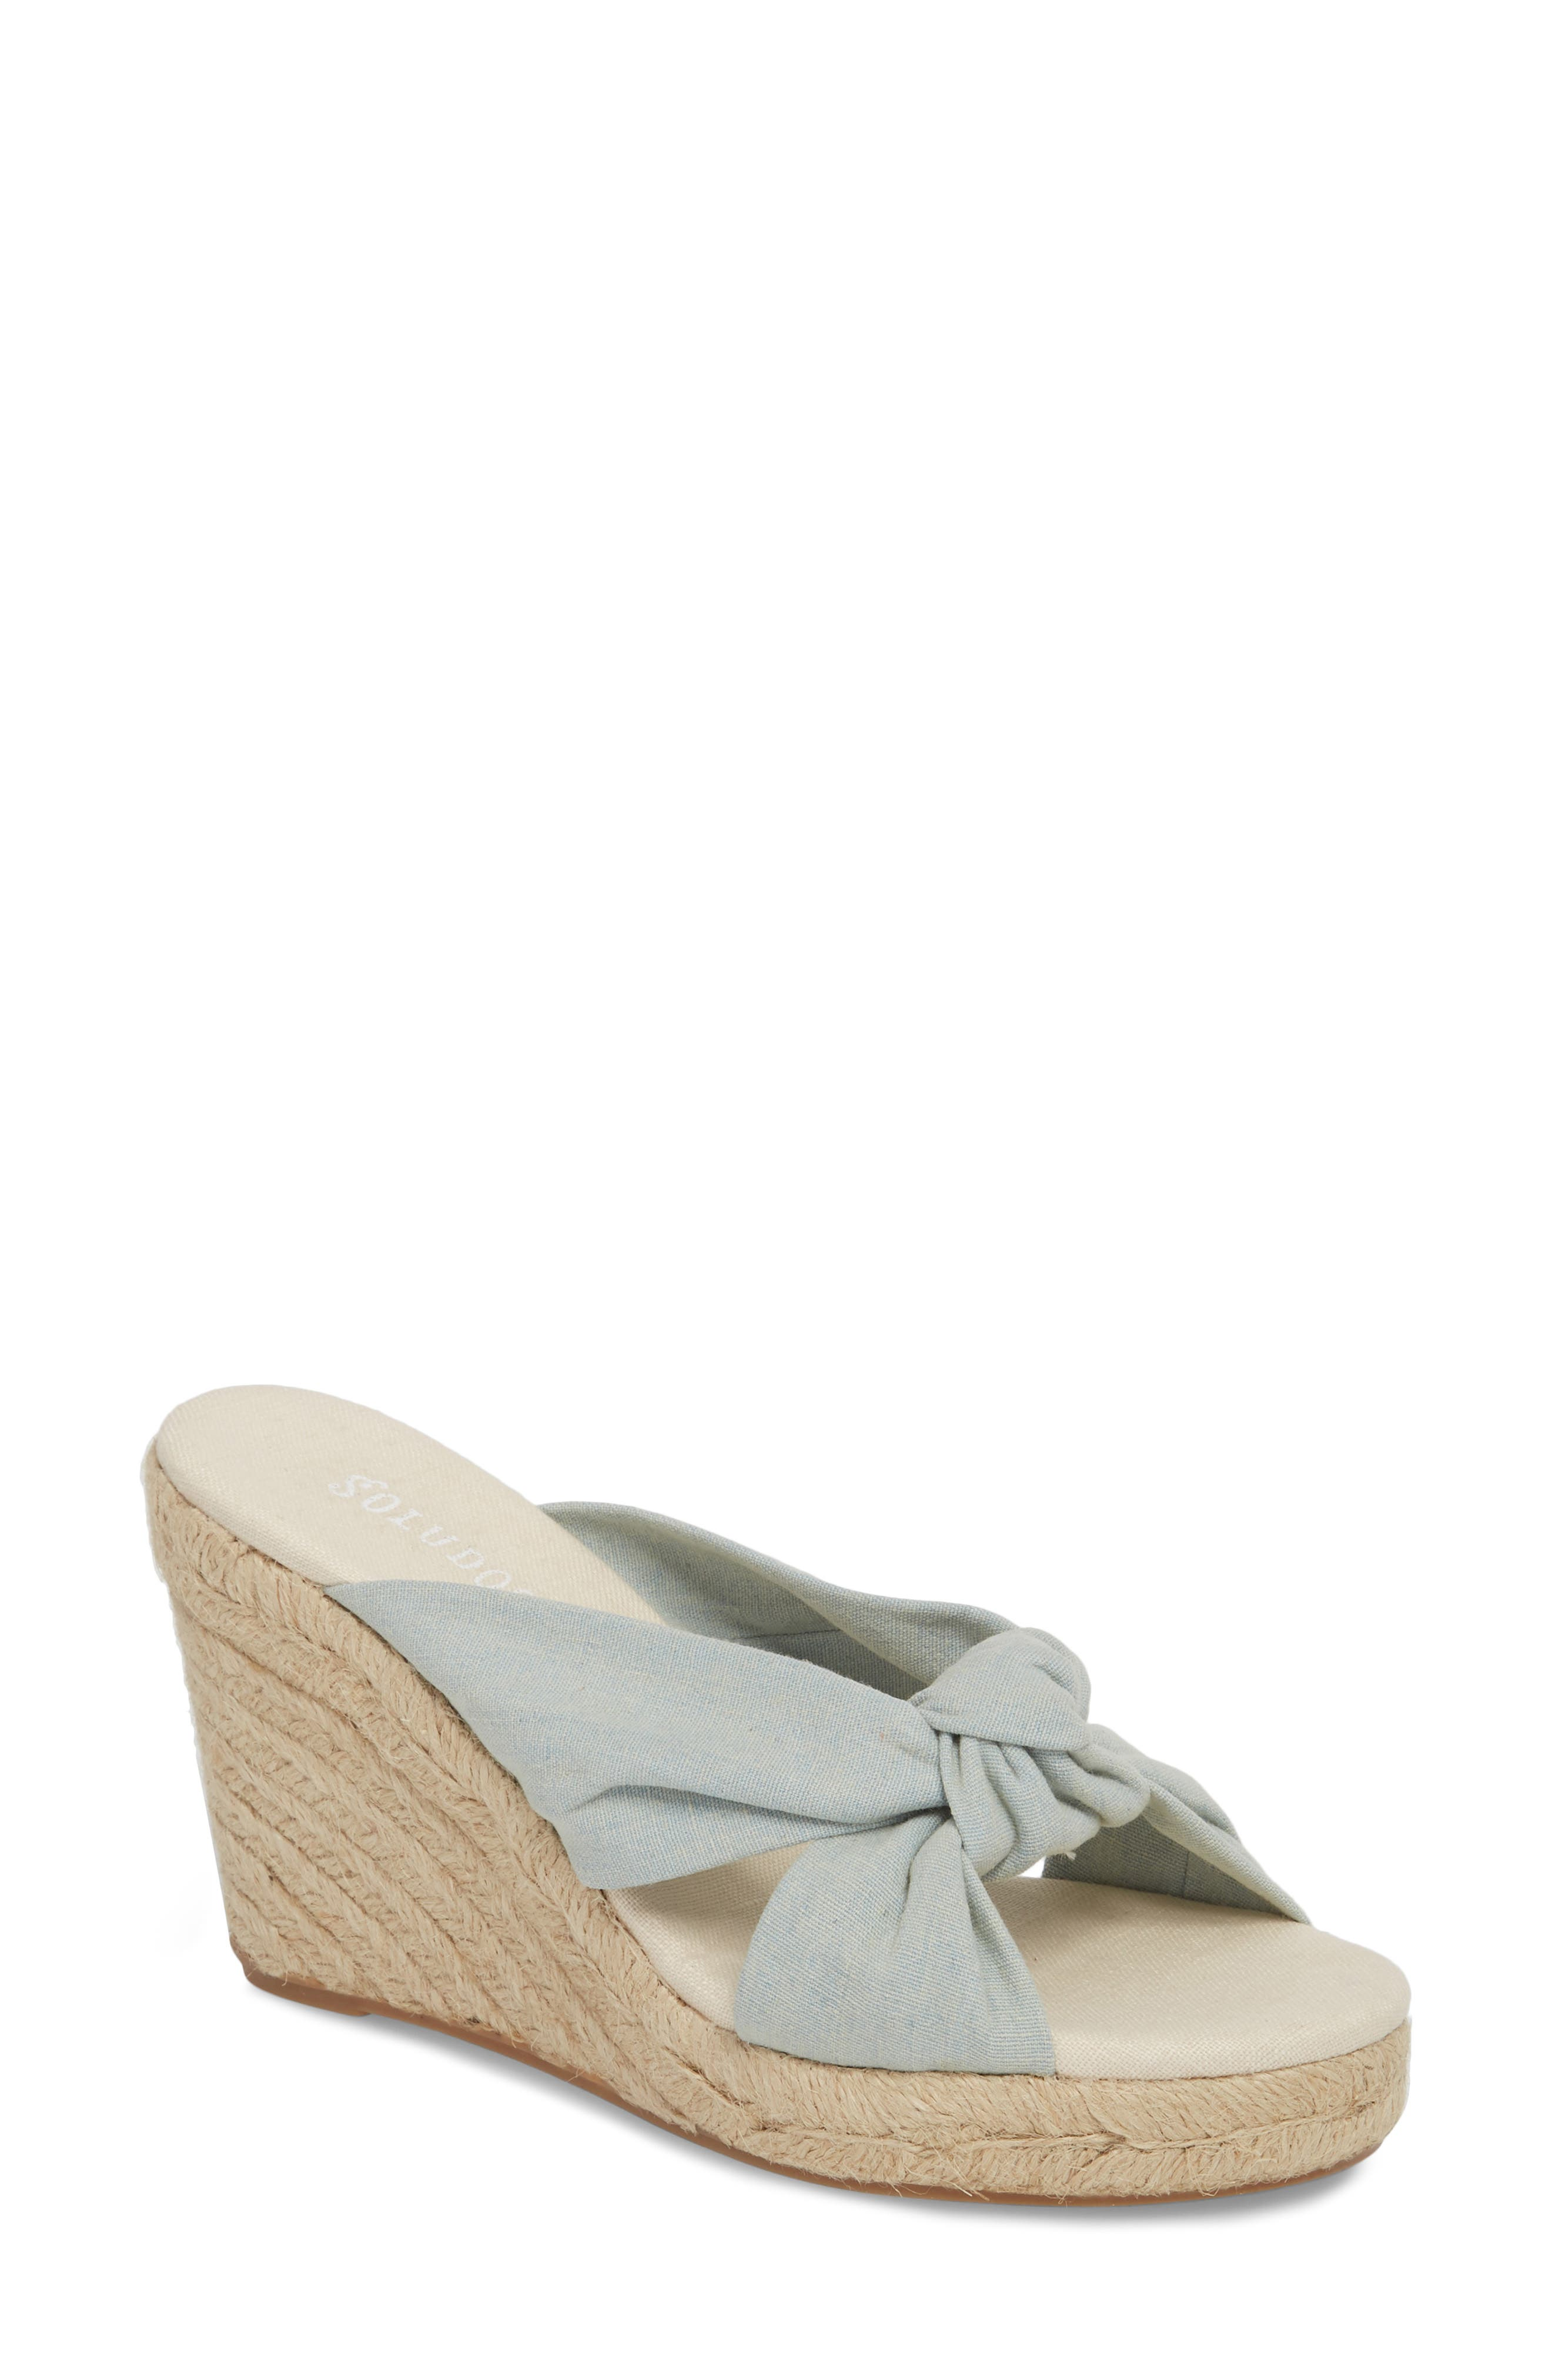 Knotted Espadrille Wedge Sandal,                         Main,                         color, Chambray